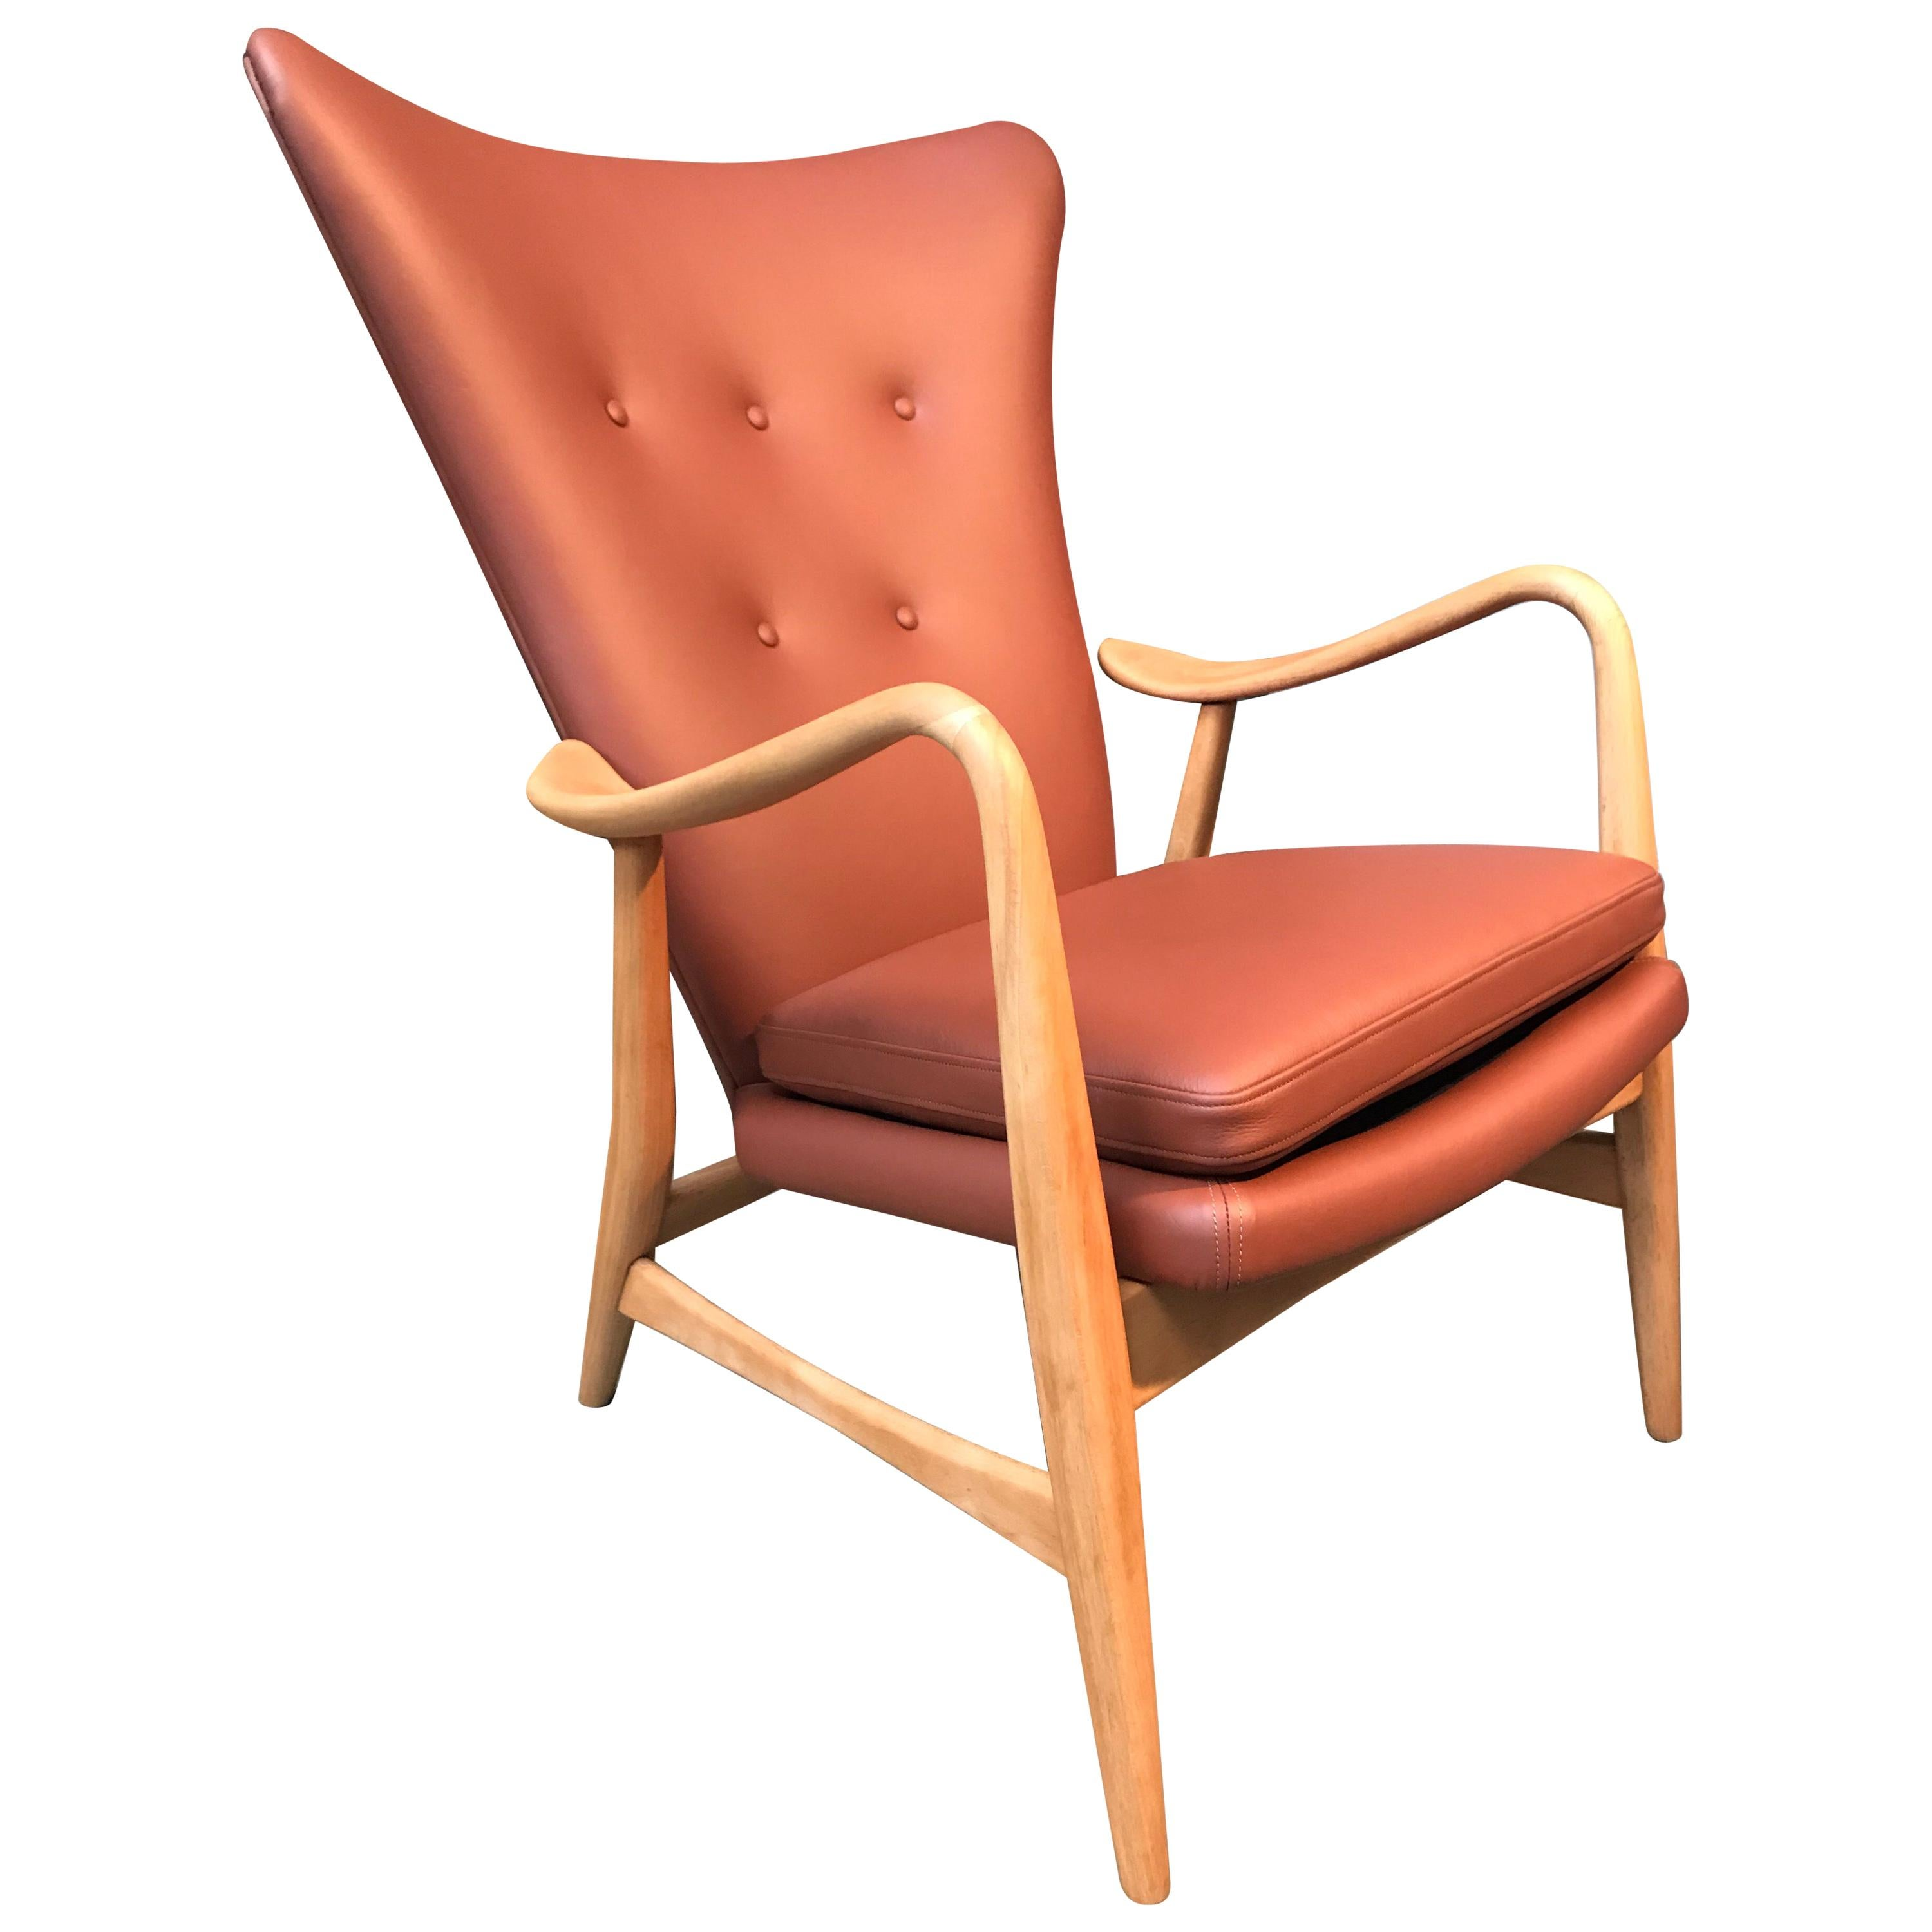 Vintage Danish In The Style Of Madsen and Schubell Wingback Lounge Chair